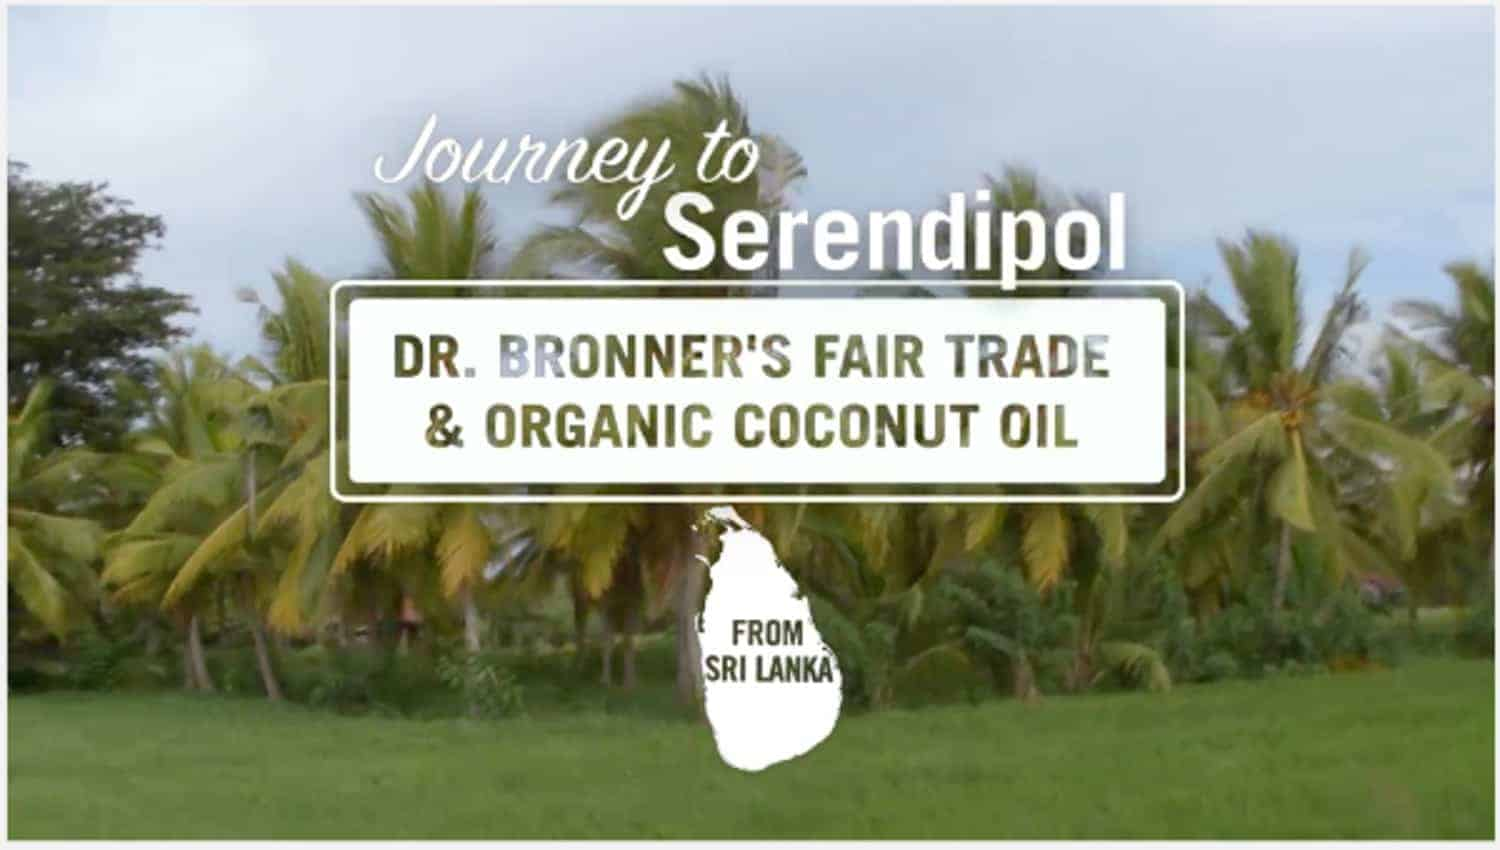 The company Dr. Bronner's is not just creating good-smelling, sustainable soaps and personal care items. They're also purchasing organic, fair trade coconut oil from small farmers in Sri Lanka, helping create a product that is healthy and sustainable--and increases farmers' incomes and ability to thrive in their communities.